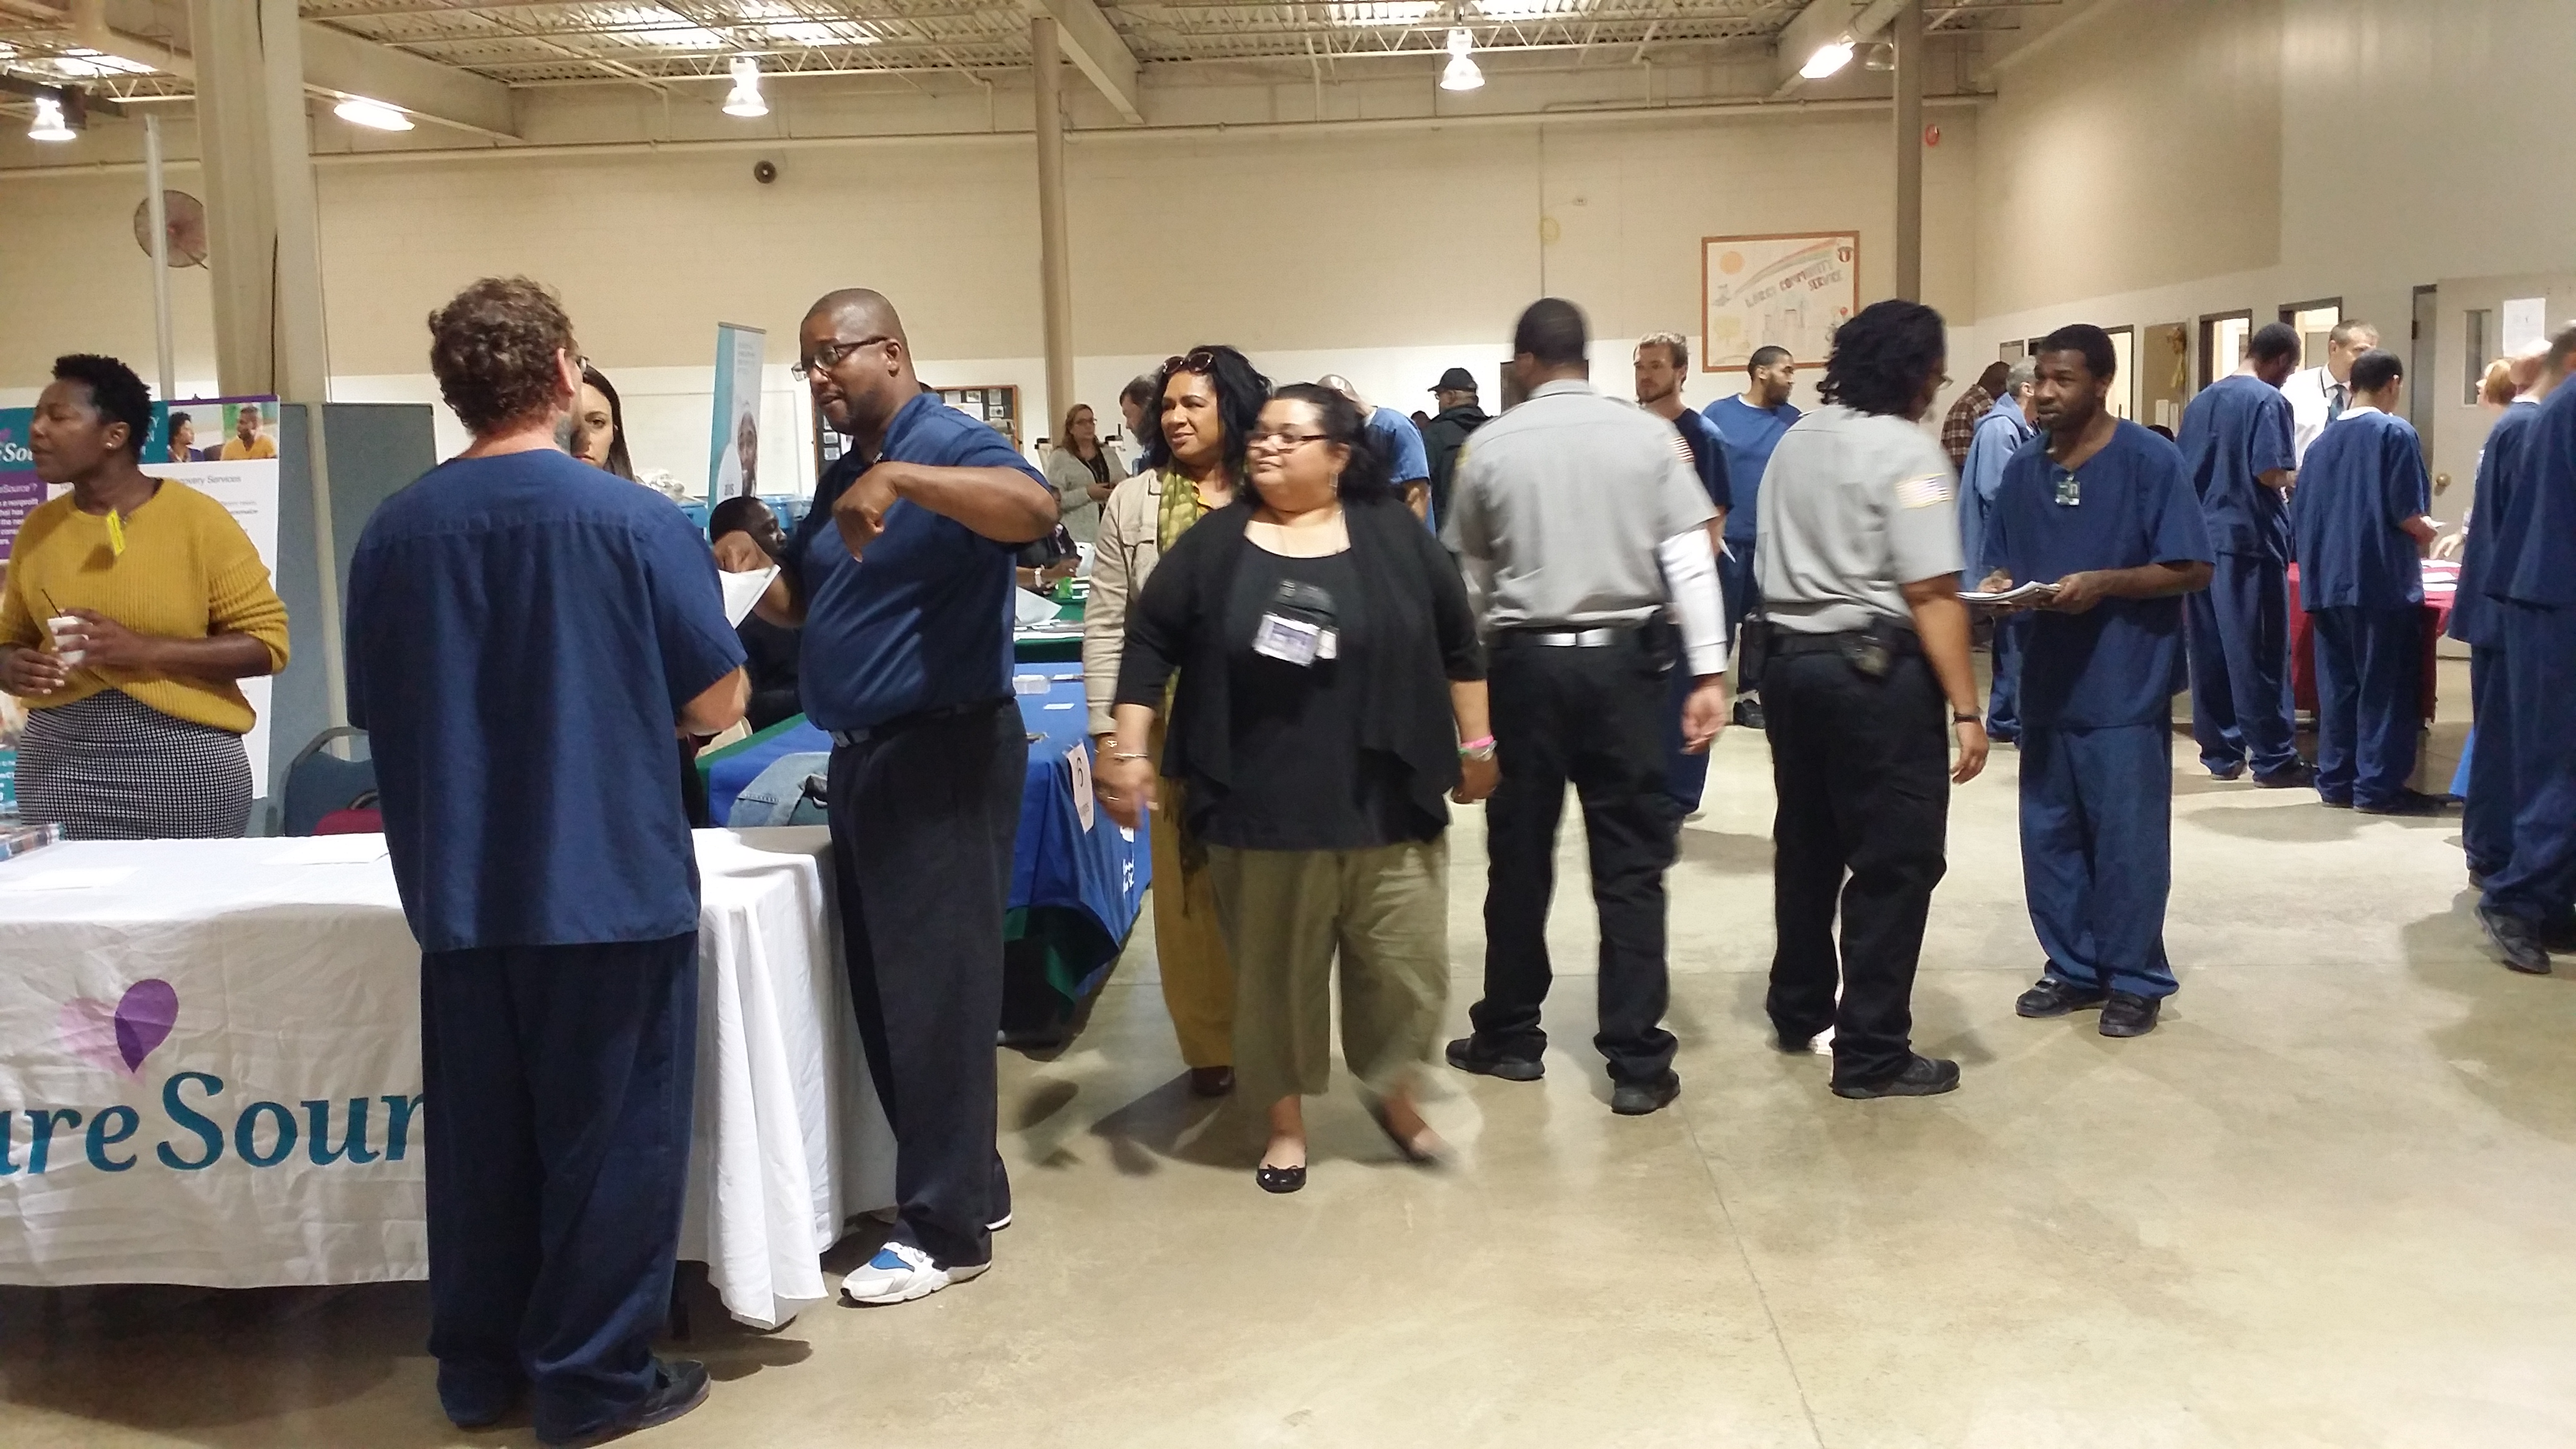 Reentry Resource Fair at LorCI